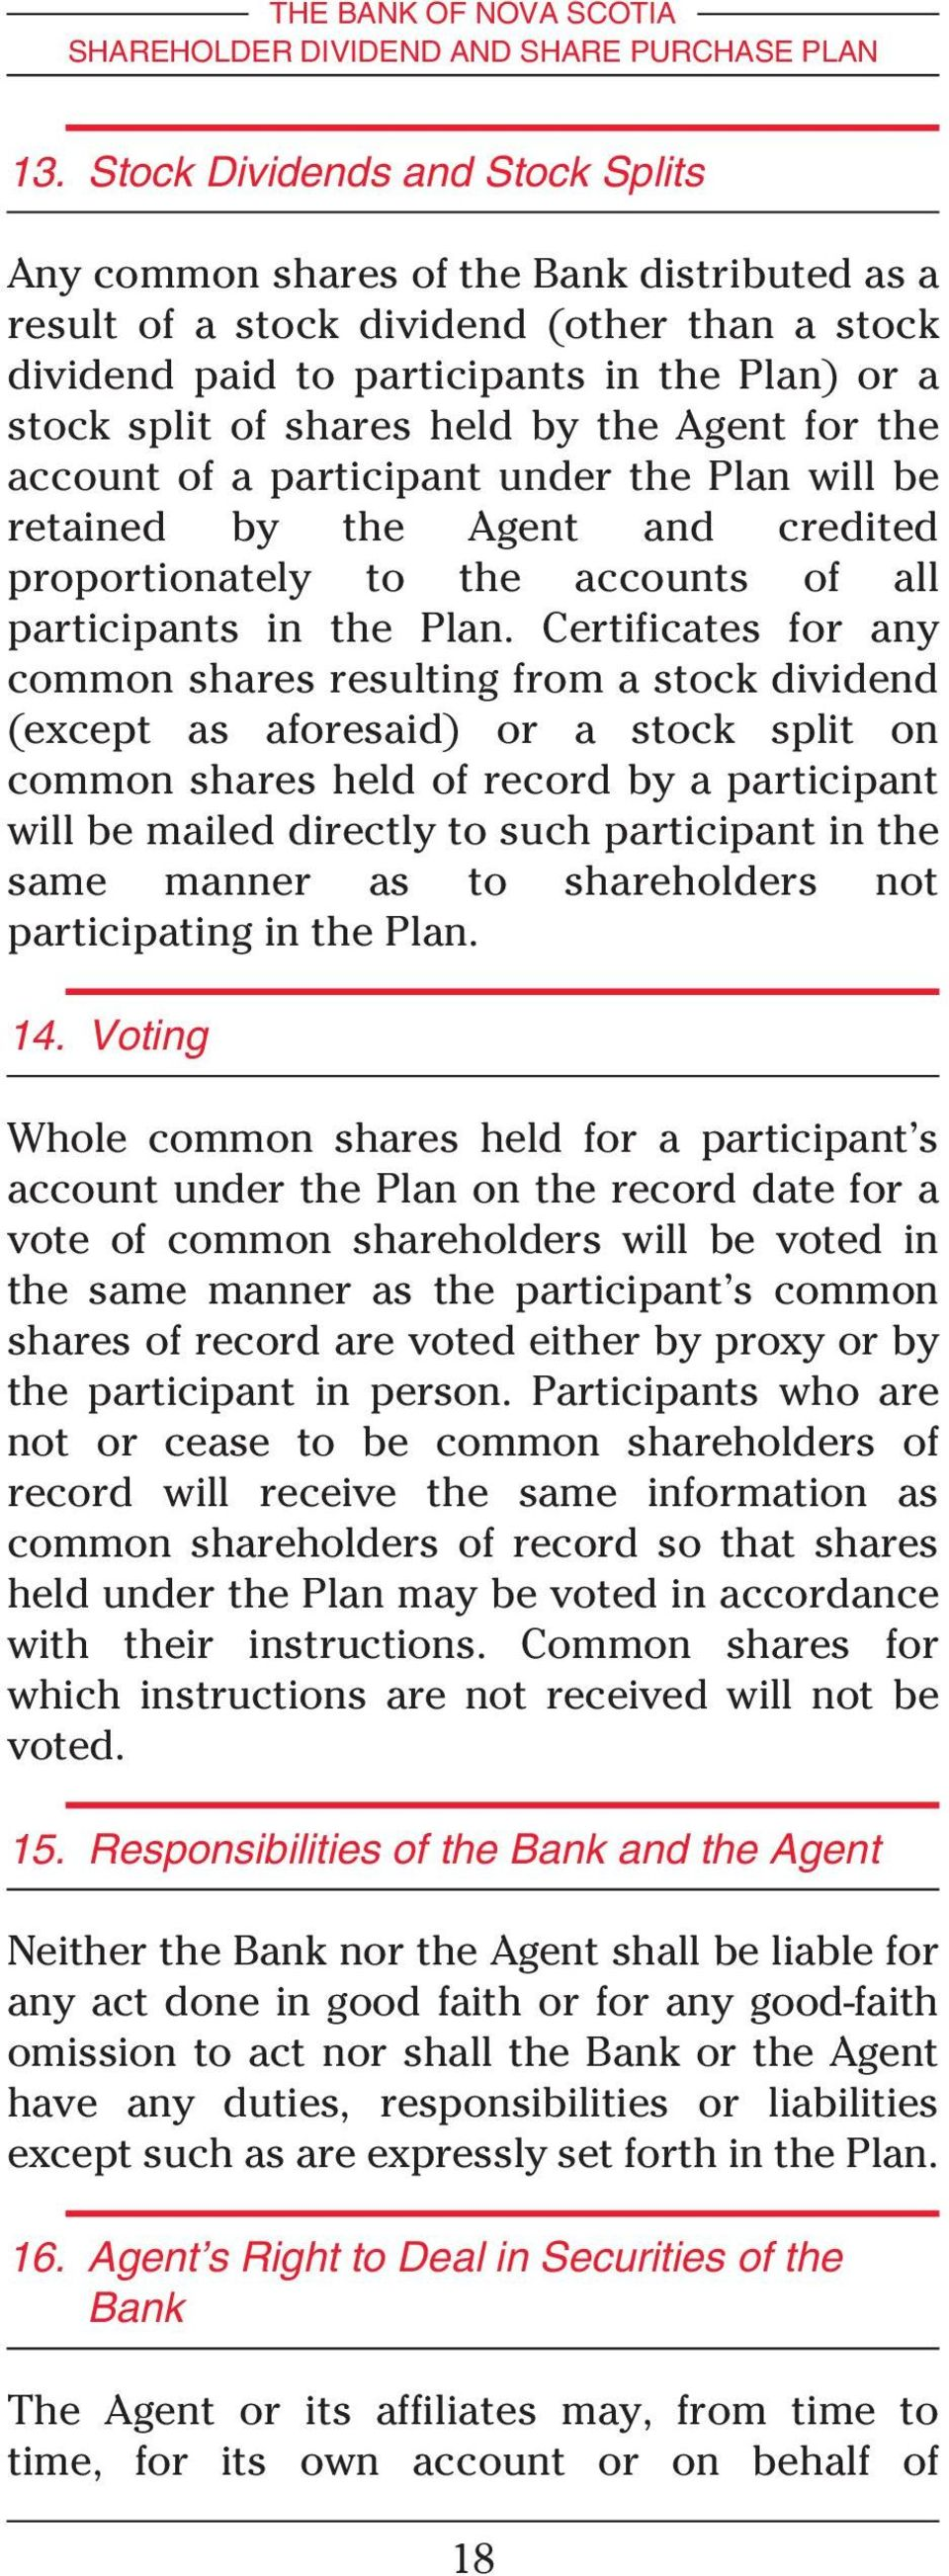 Certificates for any common shares resulting from a stock dividend (except as aforesaid) or a stock split on common shares held of record by a participant will be mailed directly to such participant